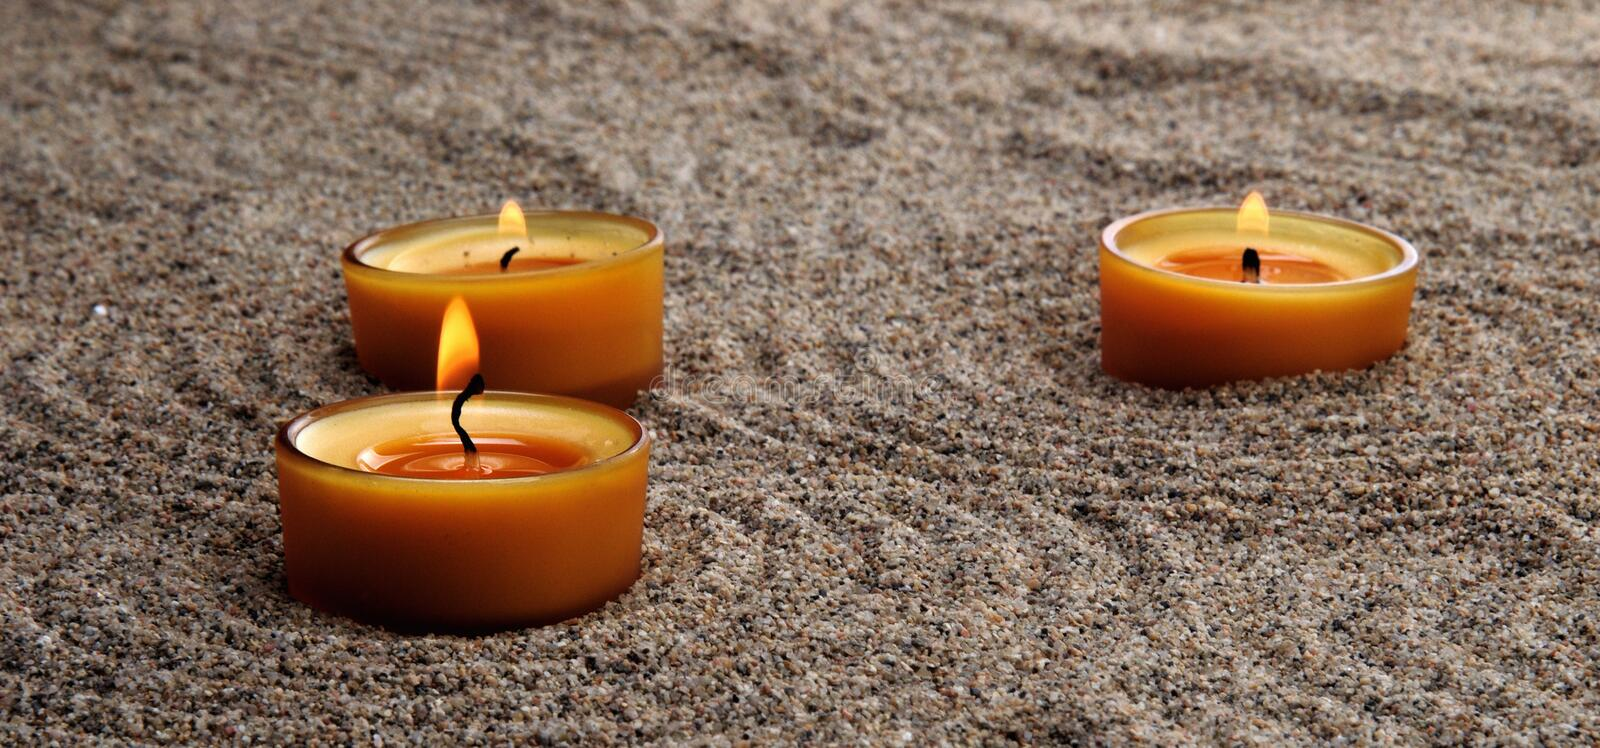 Candles in the sand. Calming patterns on the sand. stock images